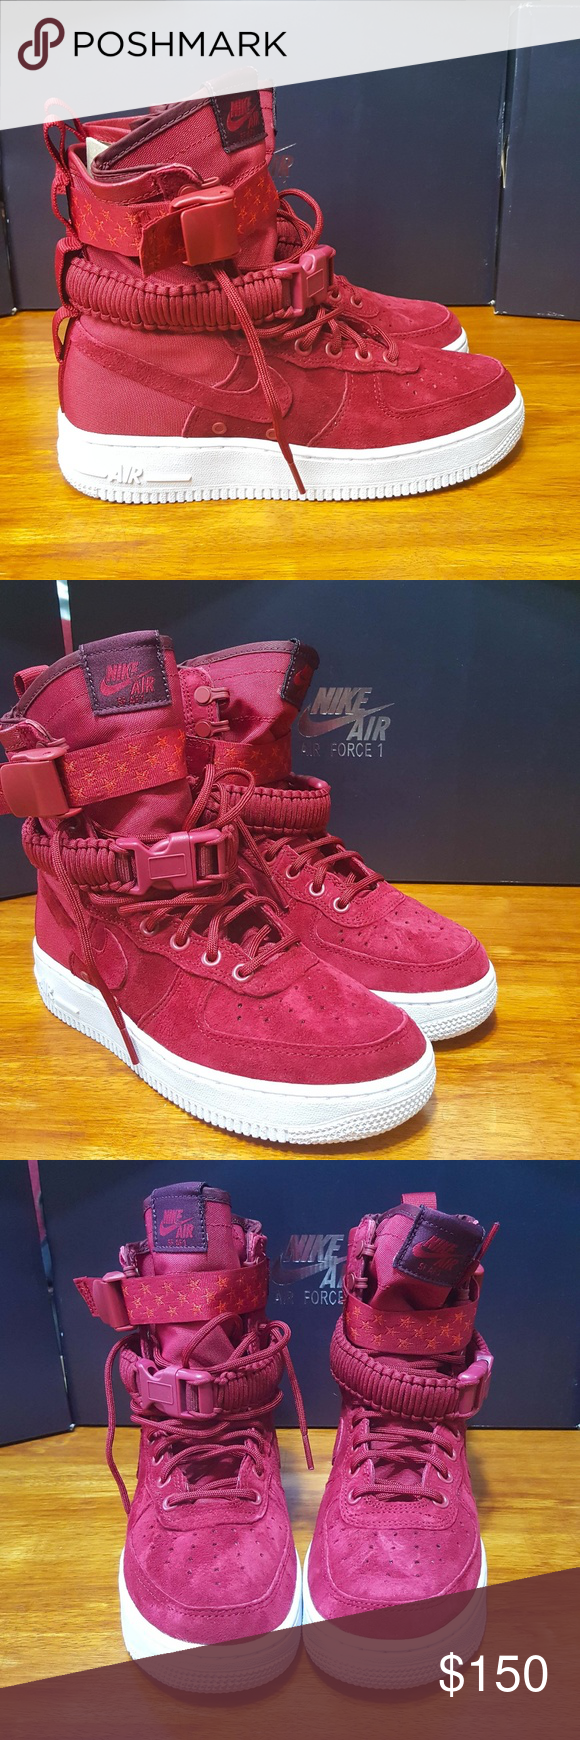 7b8c4ef9379 Nike Women's SF AF1 Air Force 1 Red Crush 857872 Women's Nike SF AF1  Special Forces